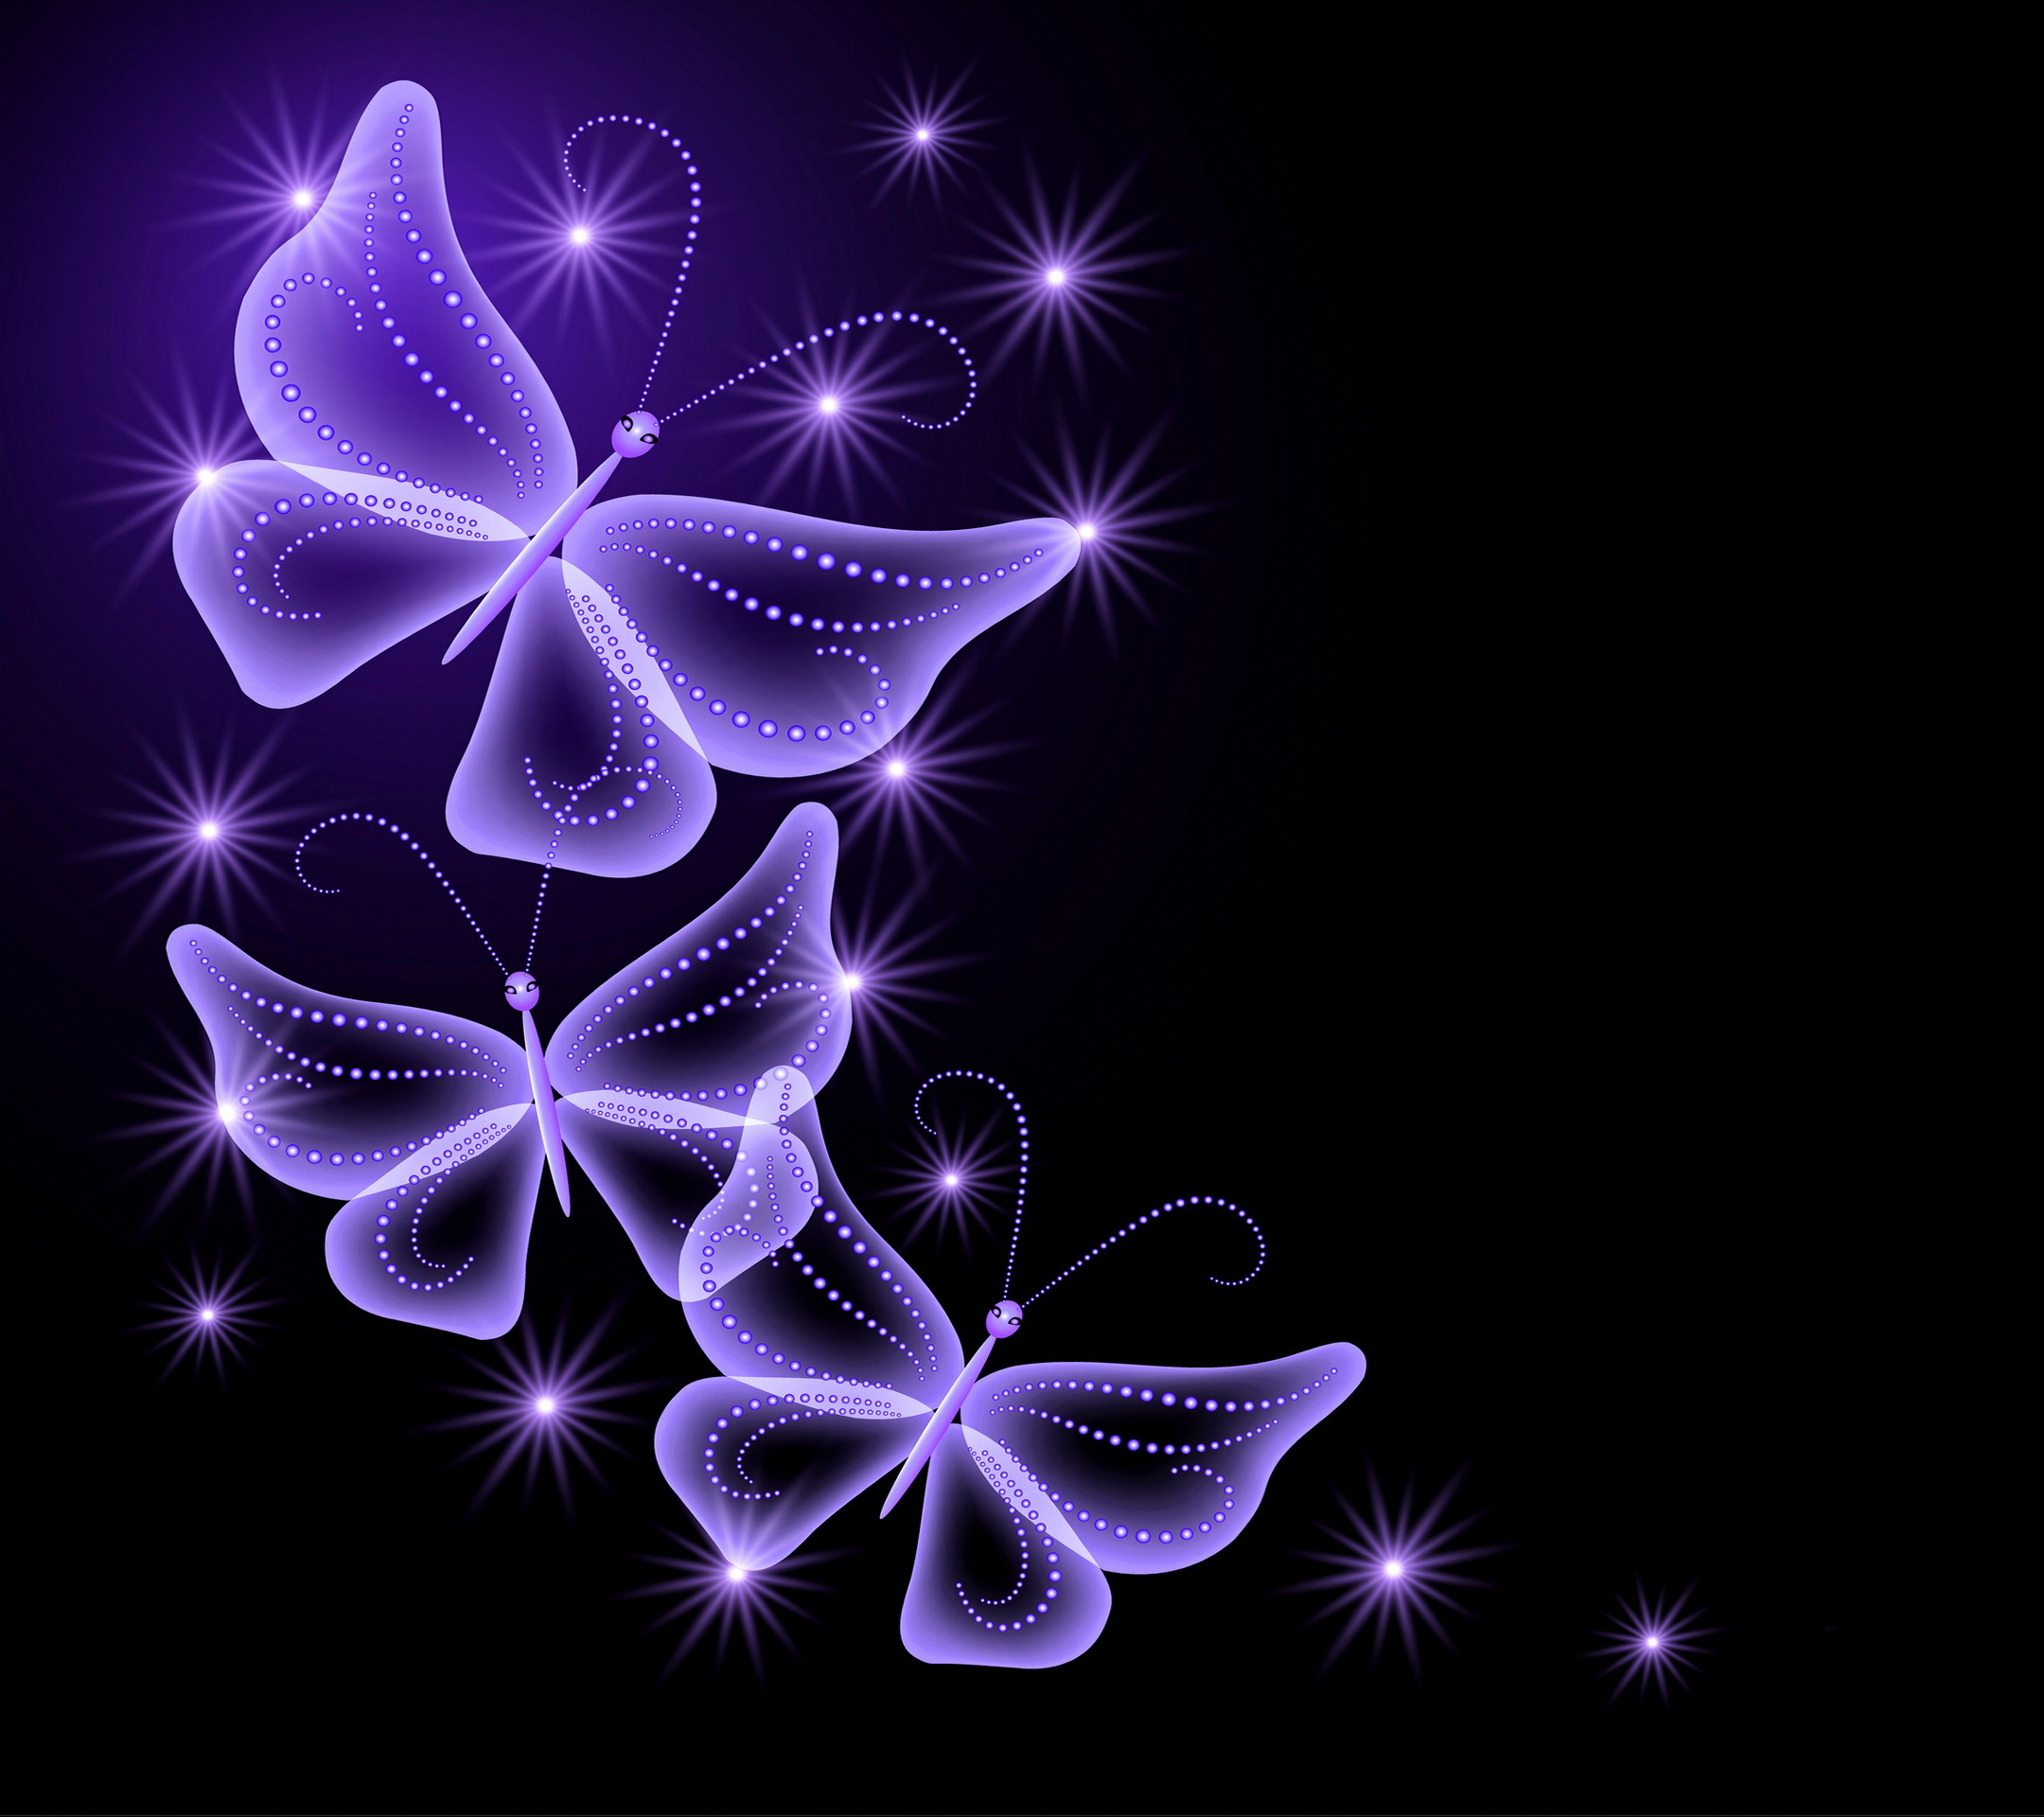 Wallpaper neon butterflies abstract purple sparkle glow 2160x1920